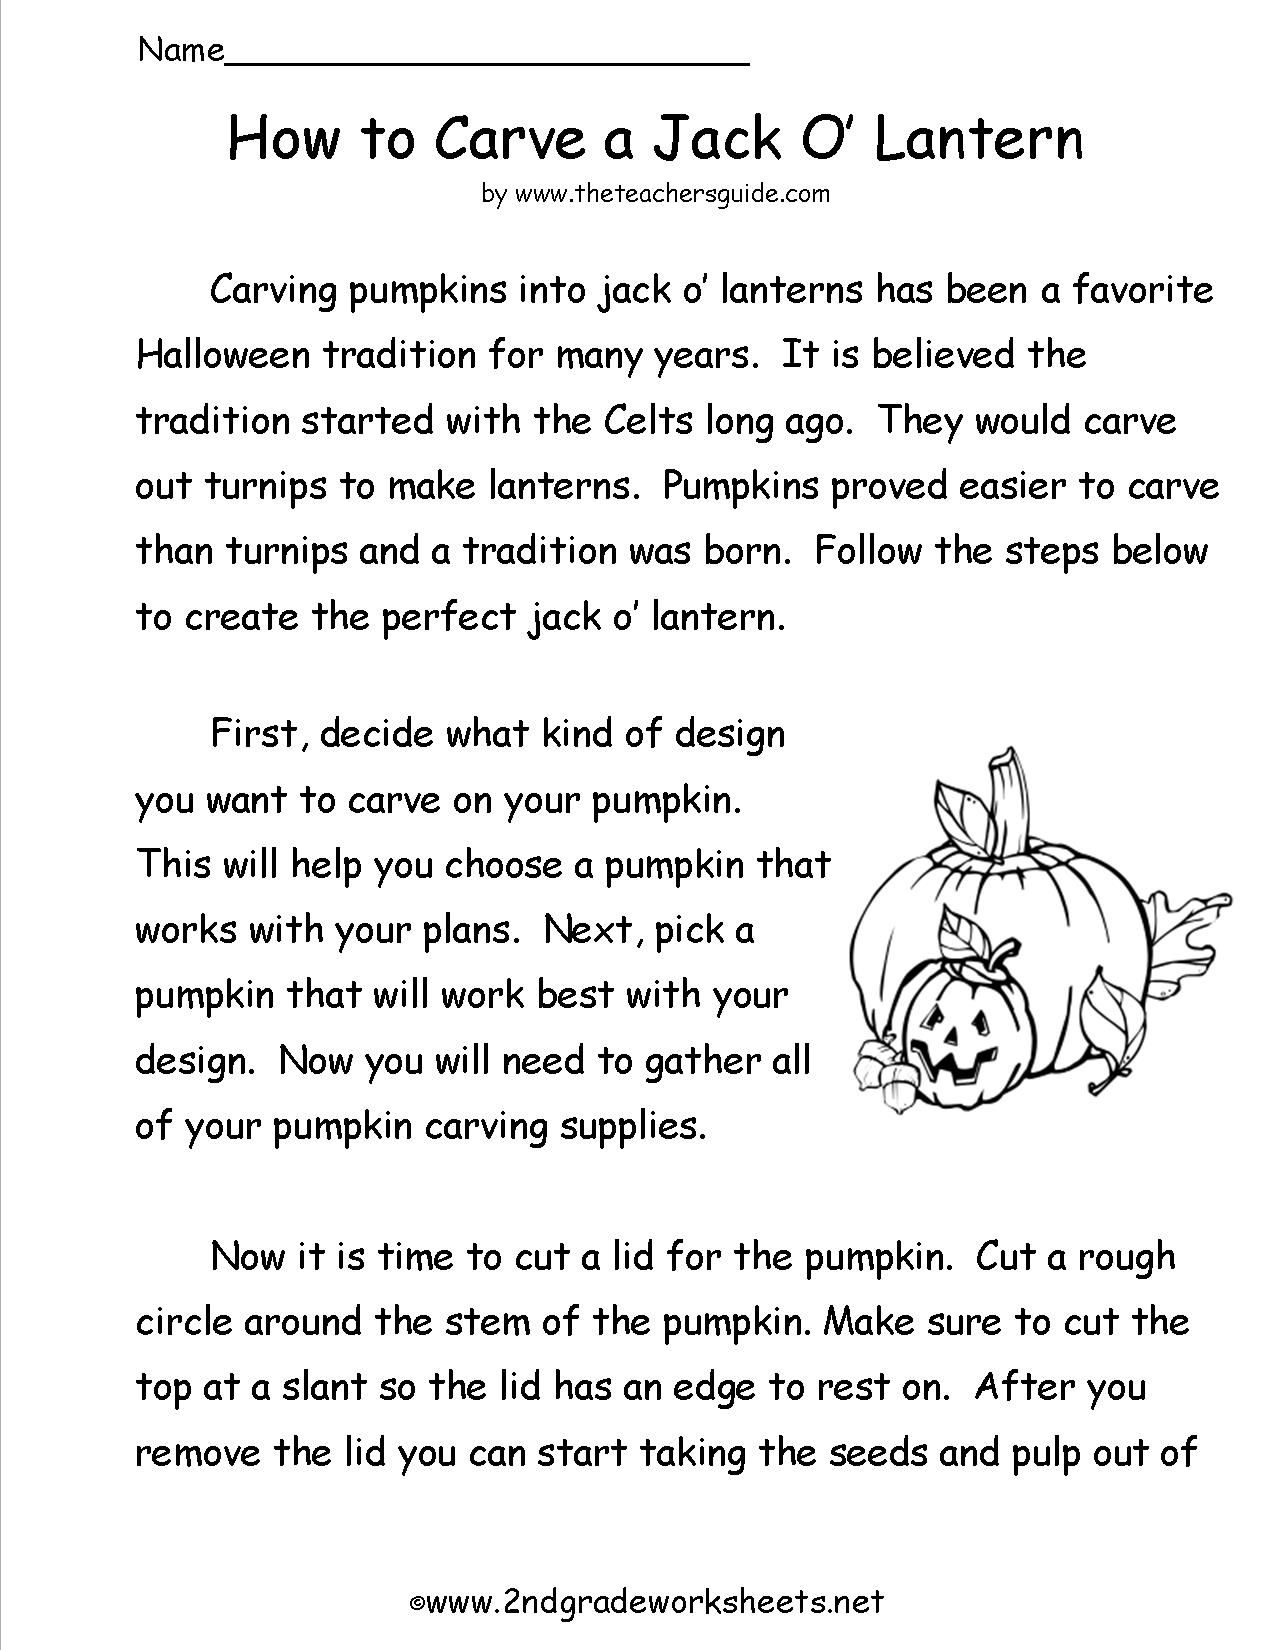 Worksheet 3rd Grade Reading Comprehension Passage worksheets and reading on pinterest